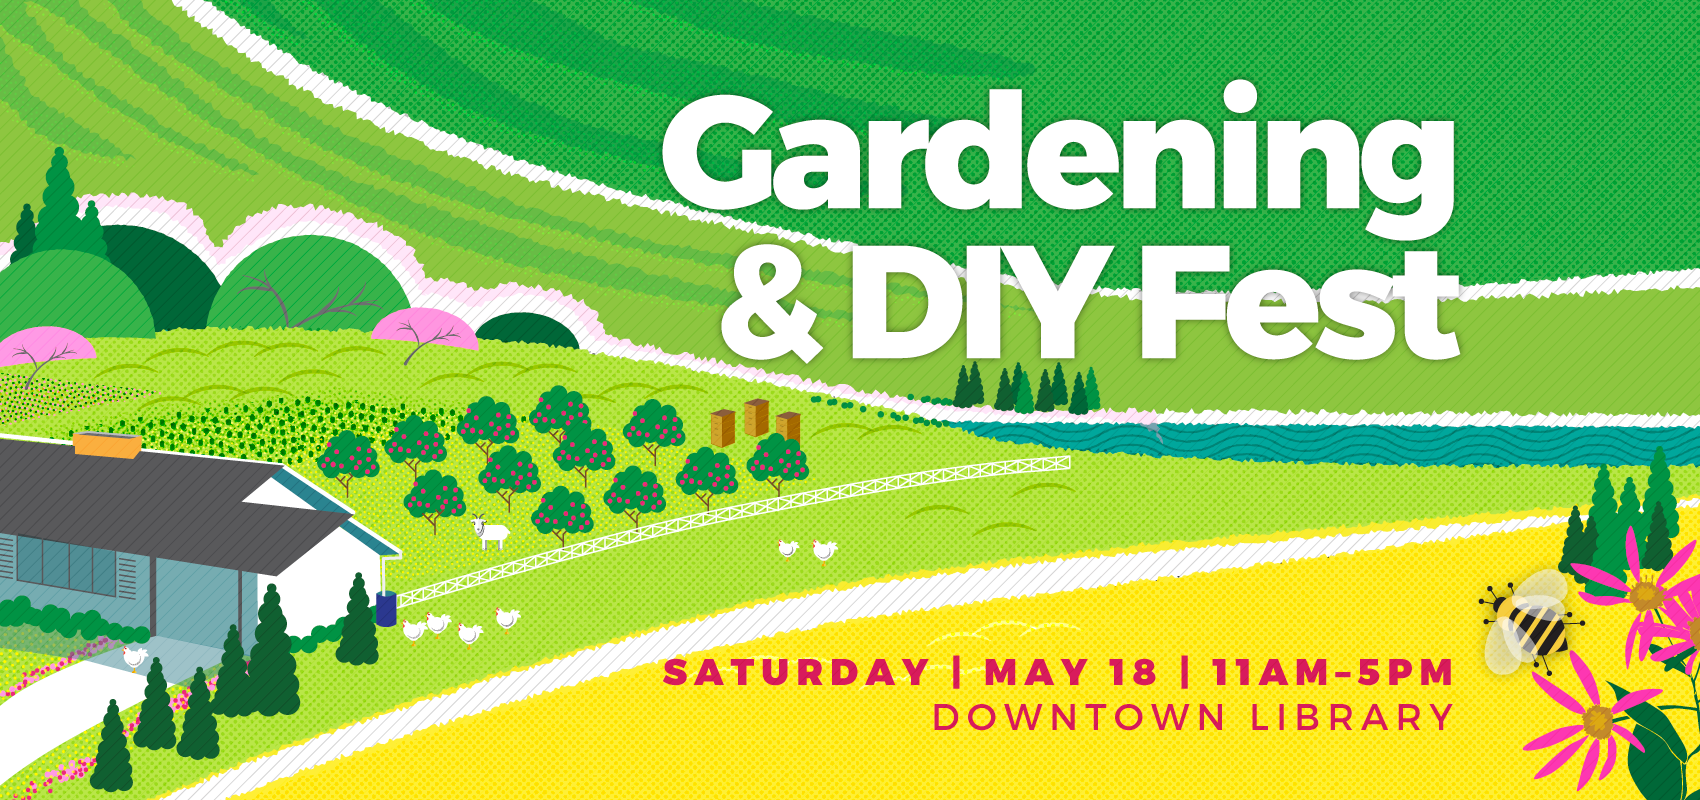 2019 Gardening and DIY Fest - Sat. May 18. .